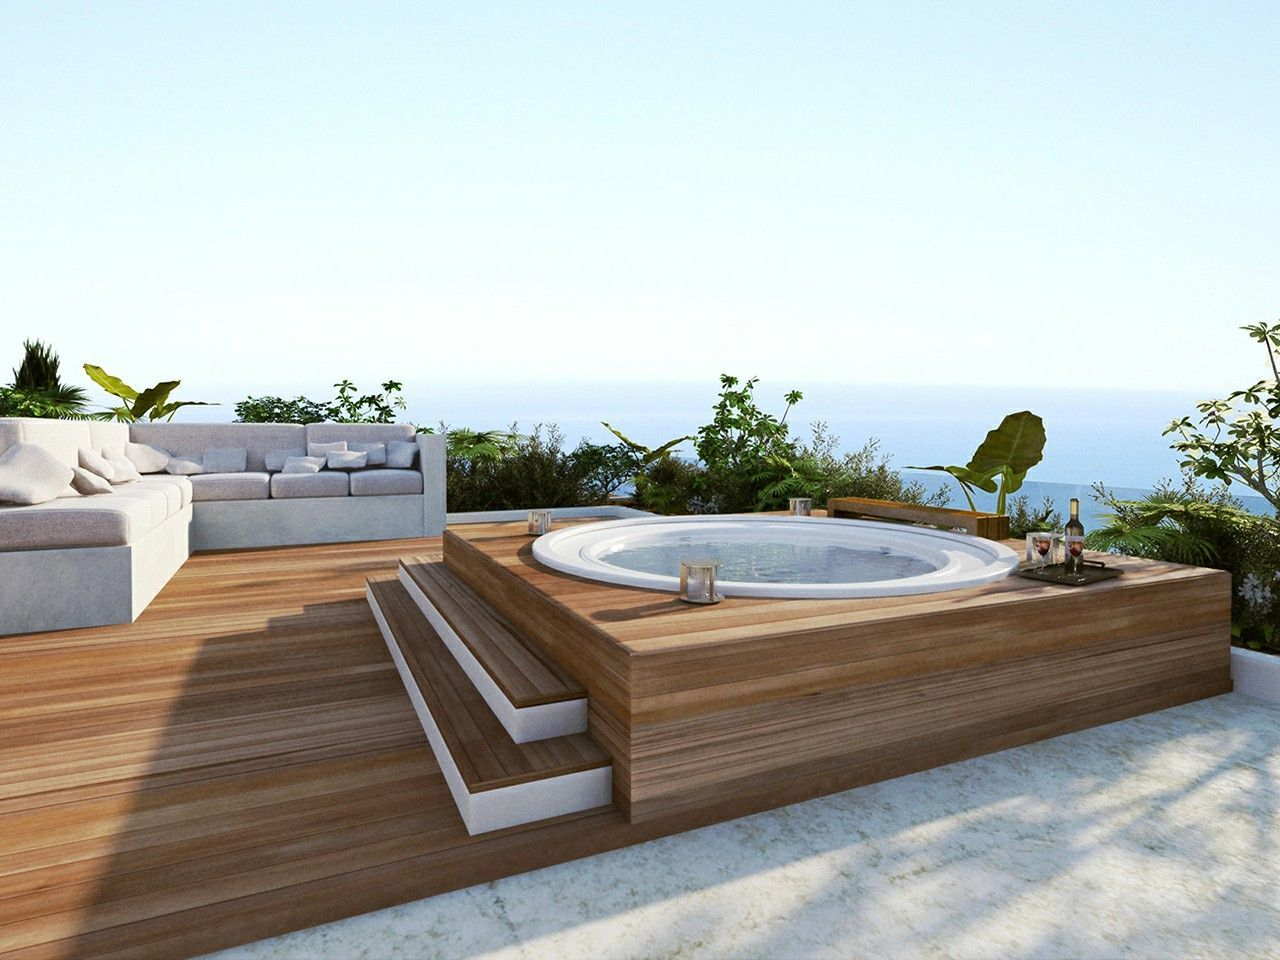 Outdoor Jacuzzi Ideas Designs Pros And Cons A Complete Guide Jacuzzi Outdoor Outdoor Bathtub Rooftop Design